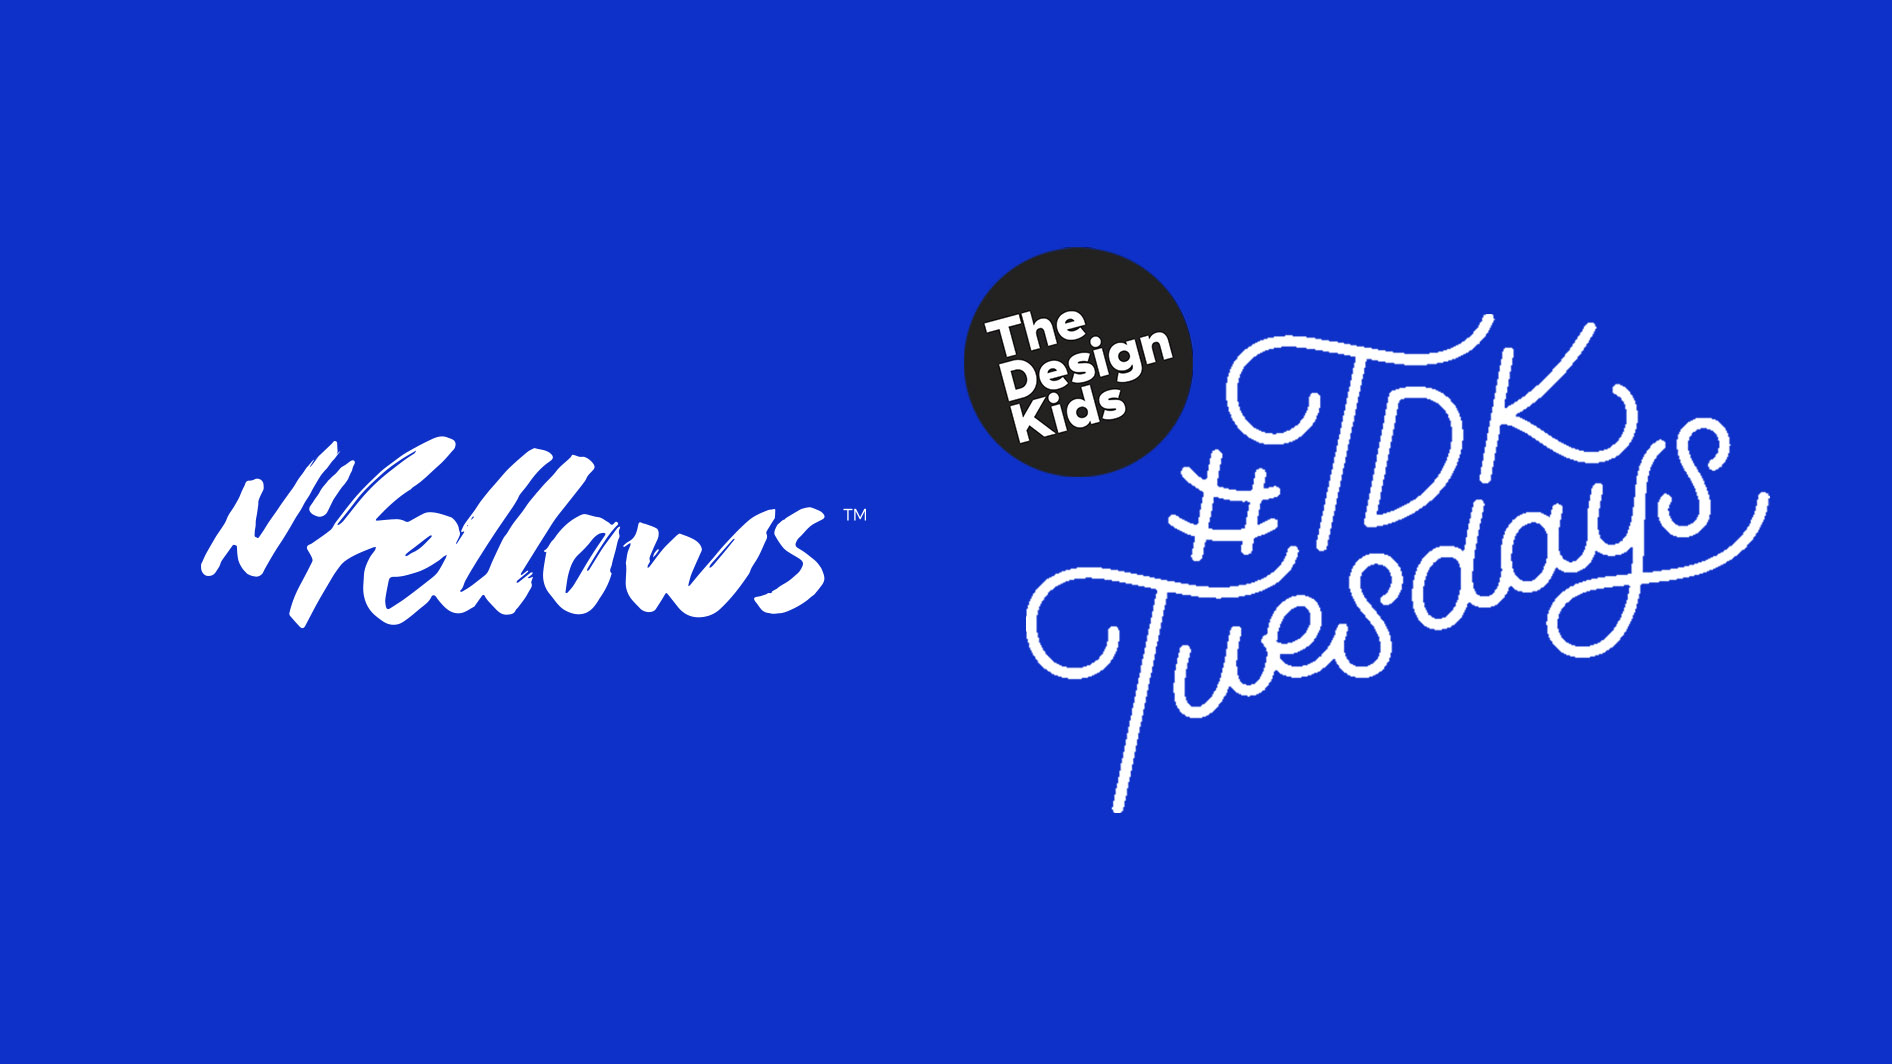 N'fellows x The Design Kids